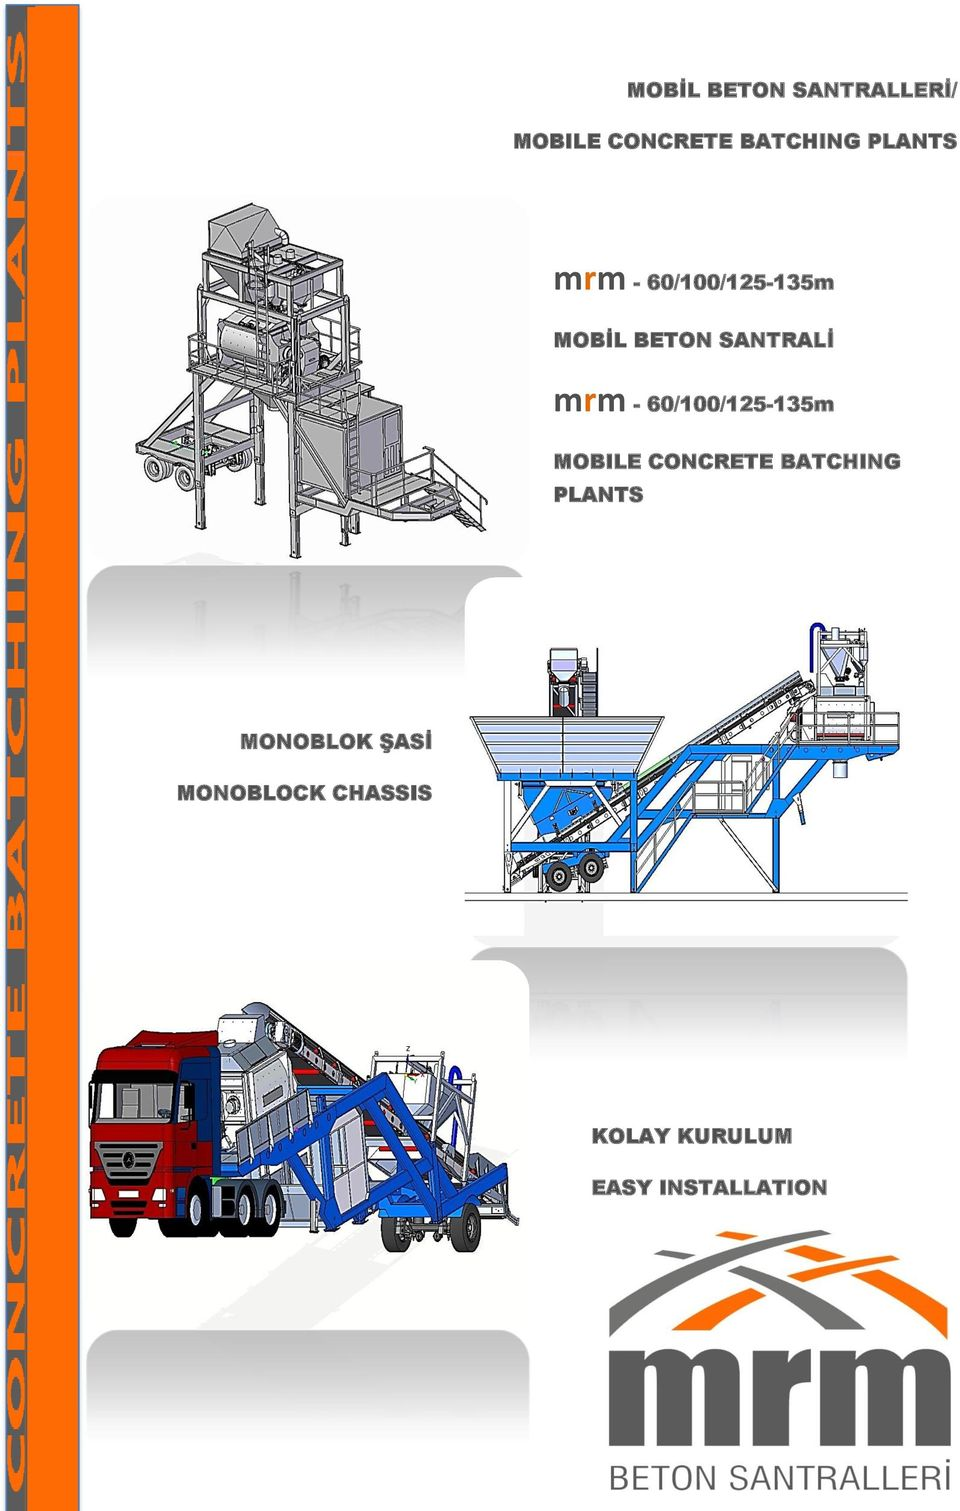 - 60/100/125-135m MOBILE CONCRETE BATCHING PLANTS